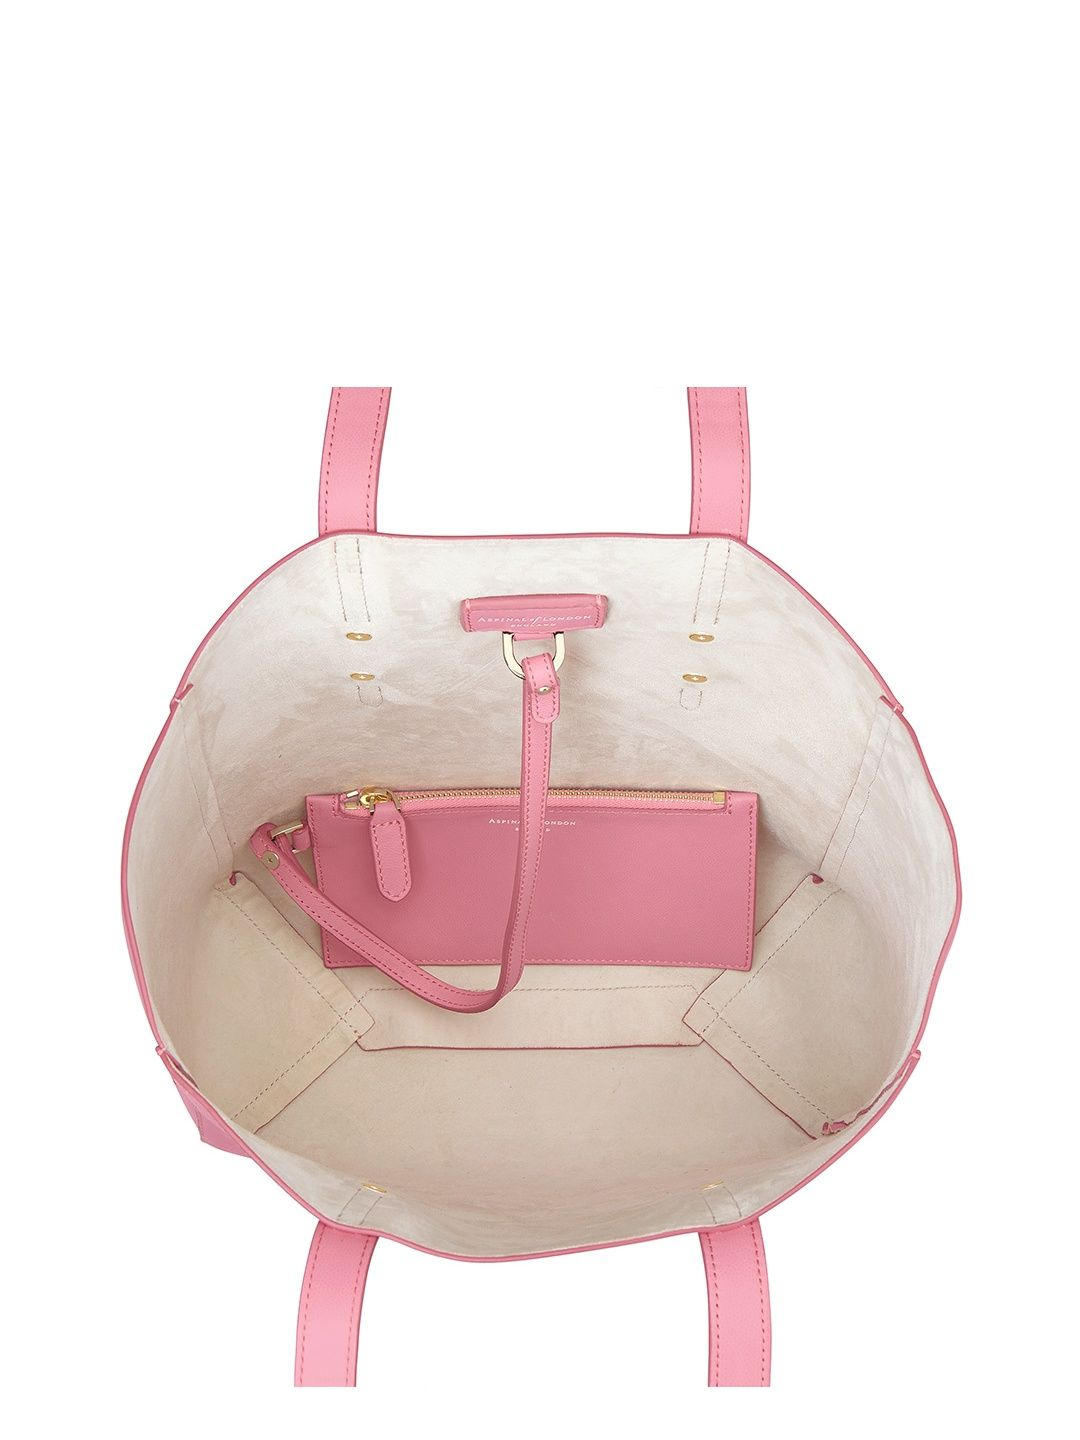 Aspinal of London Aspinal Essential Tote in Blossom Kaviar & Blush Suede Image 3